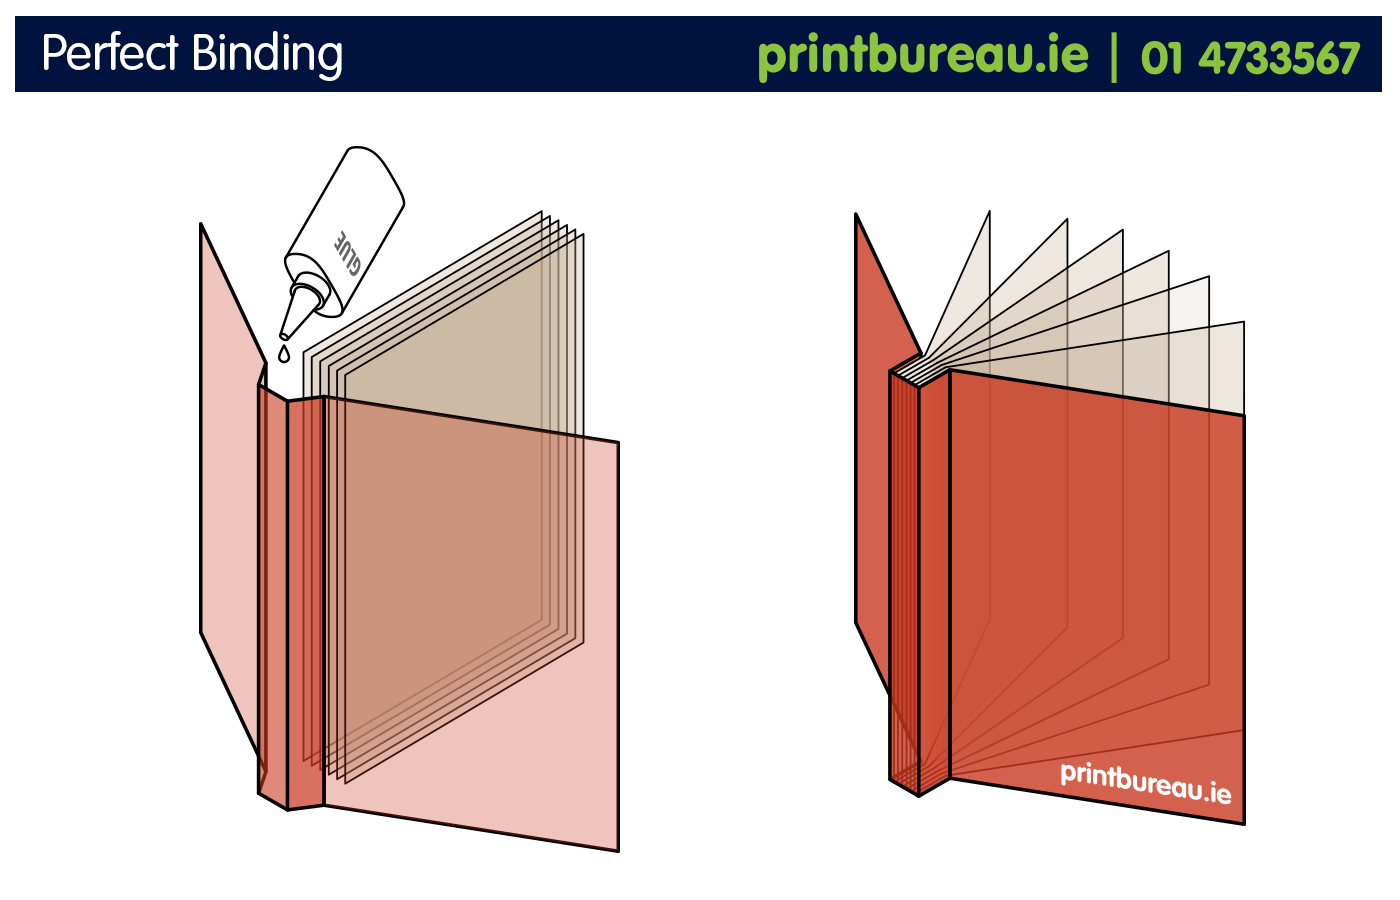 Print Bureau Perfect Binding